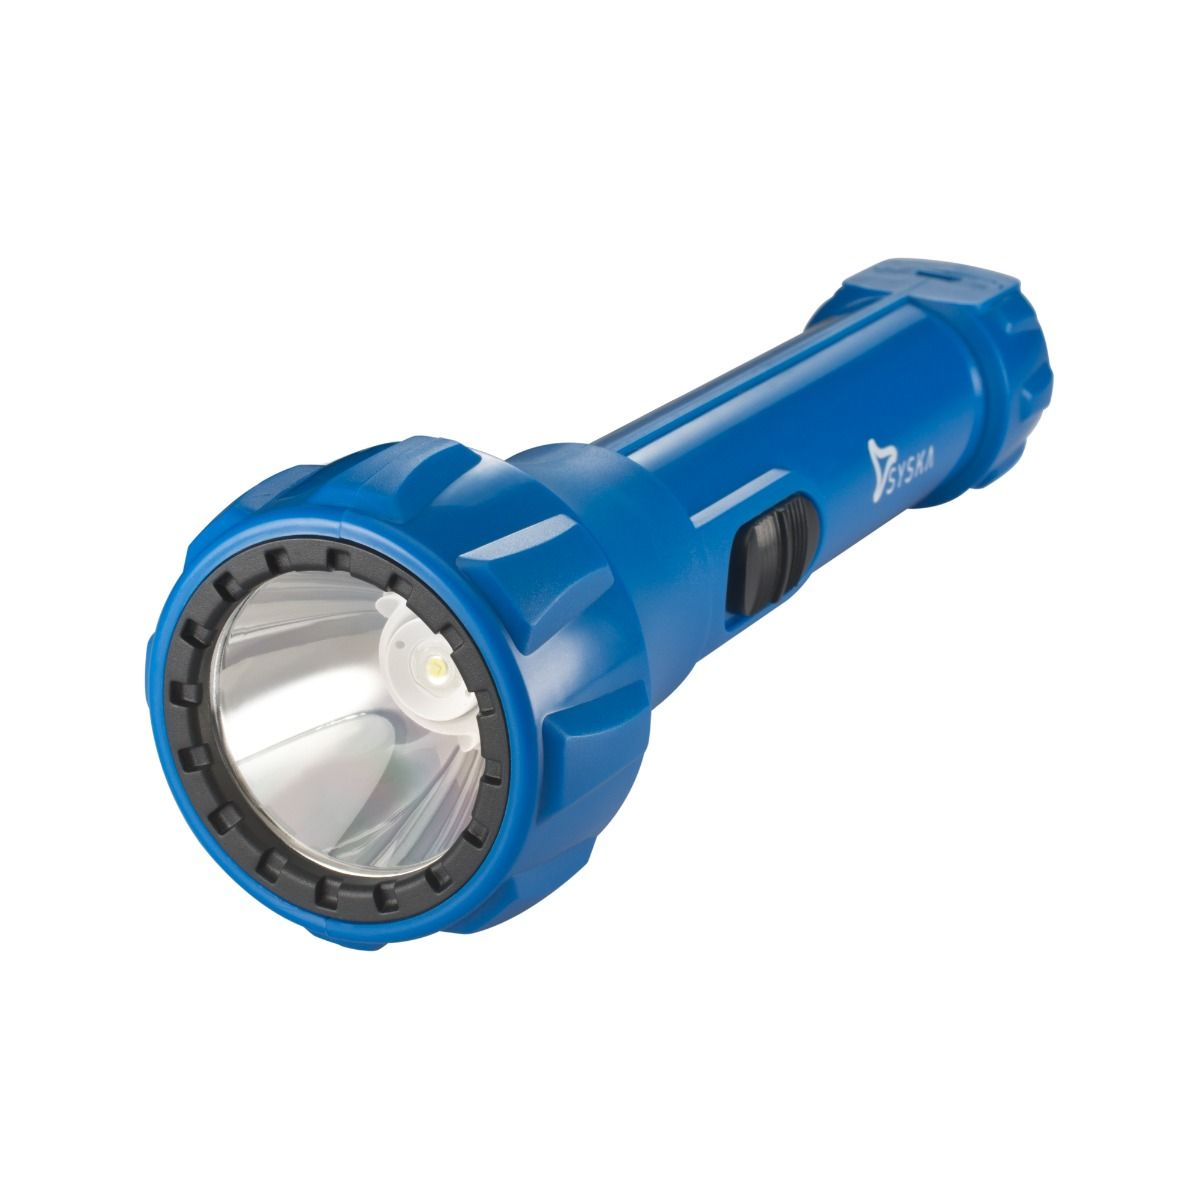 2W Ultrabright Torch T212L